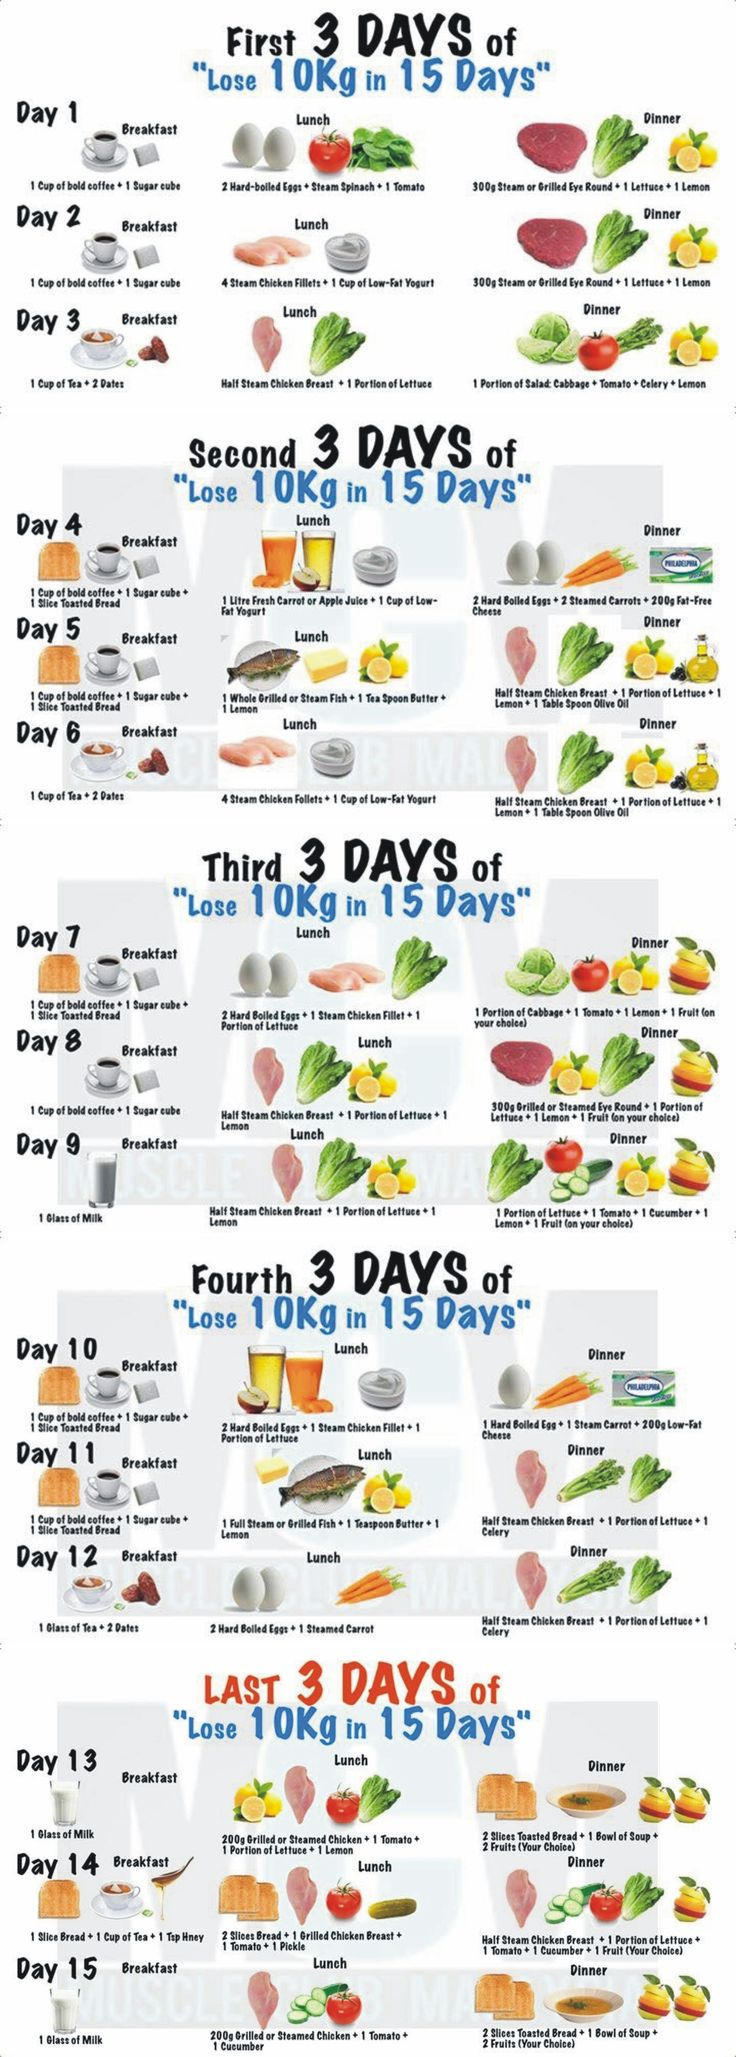 Lose 10 kg in 15 days